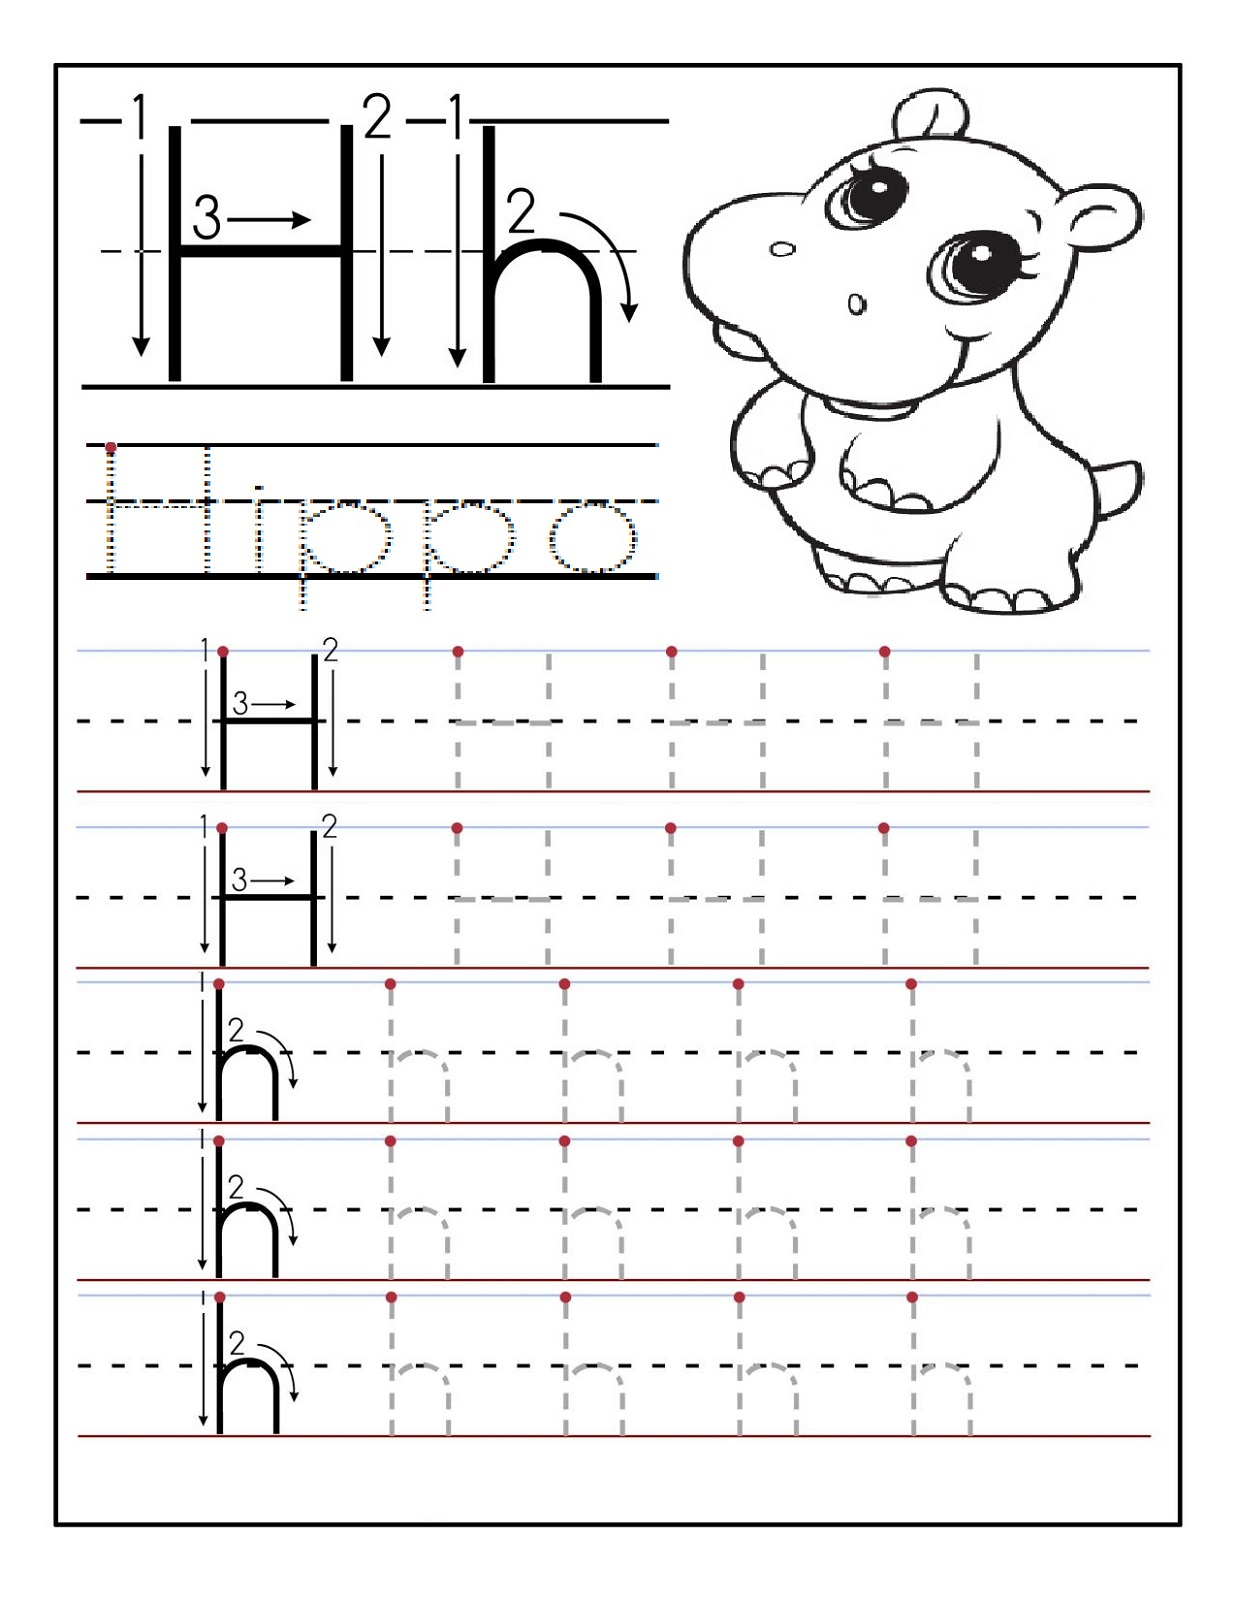 28+ [ Preschool Letter Worksheets Alphabet ] | Preschool ...